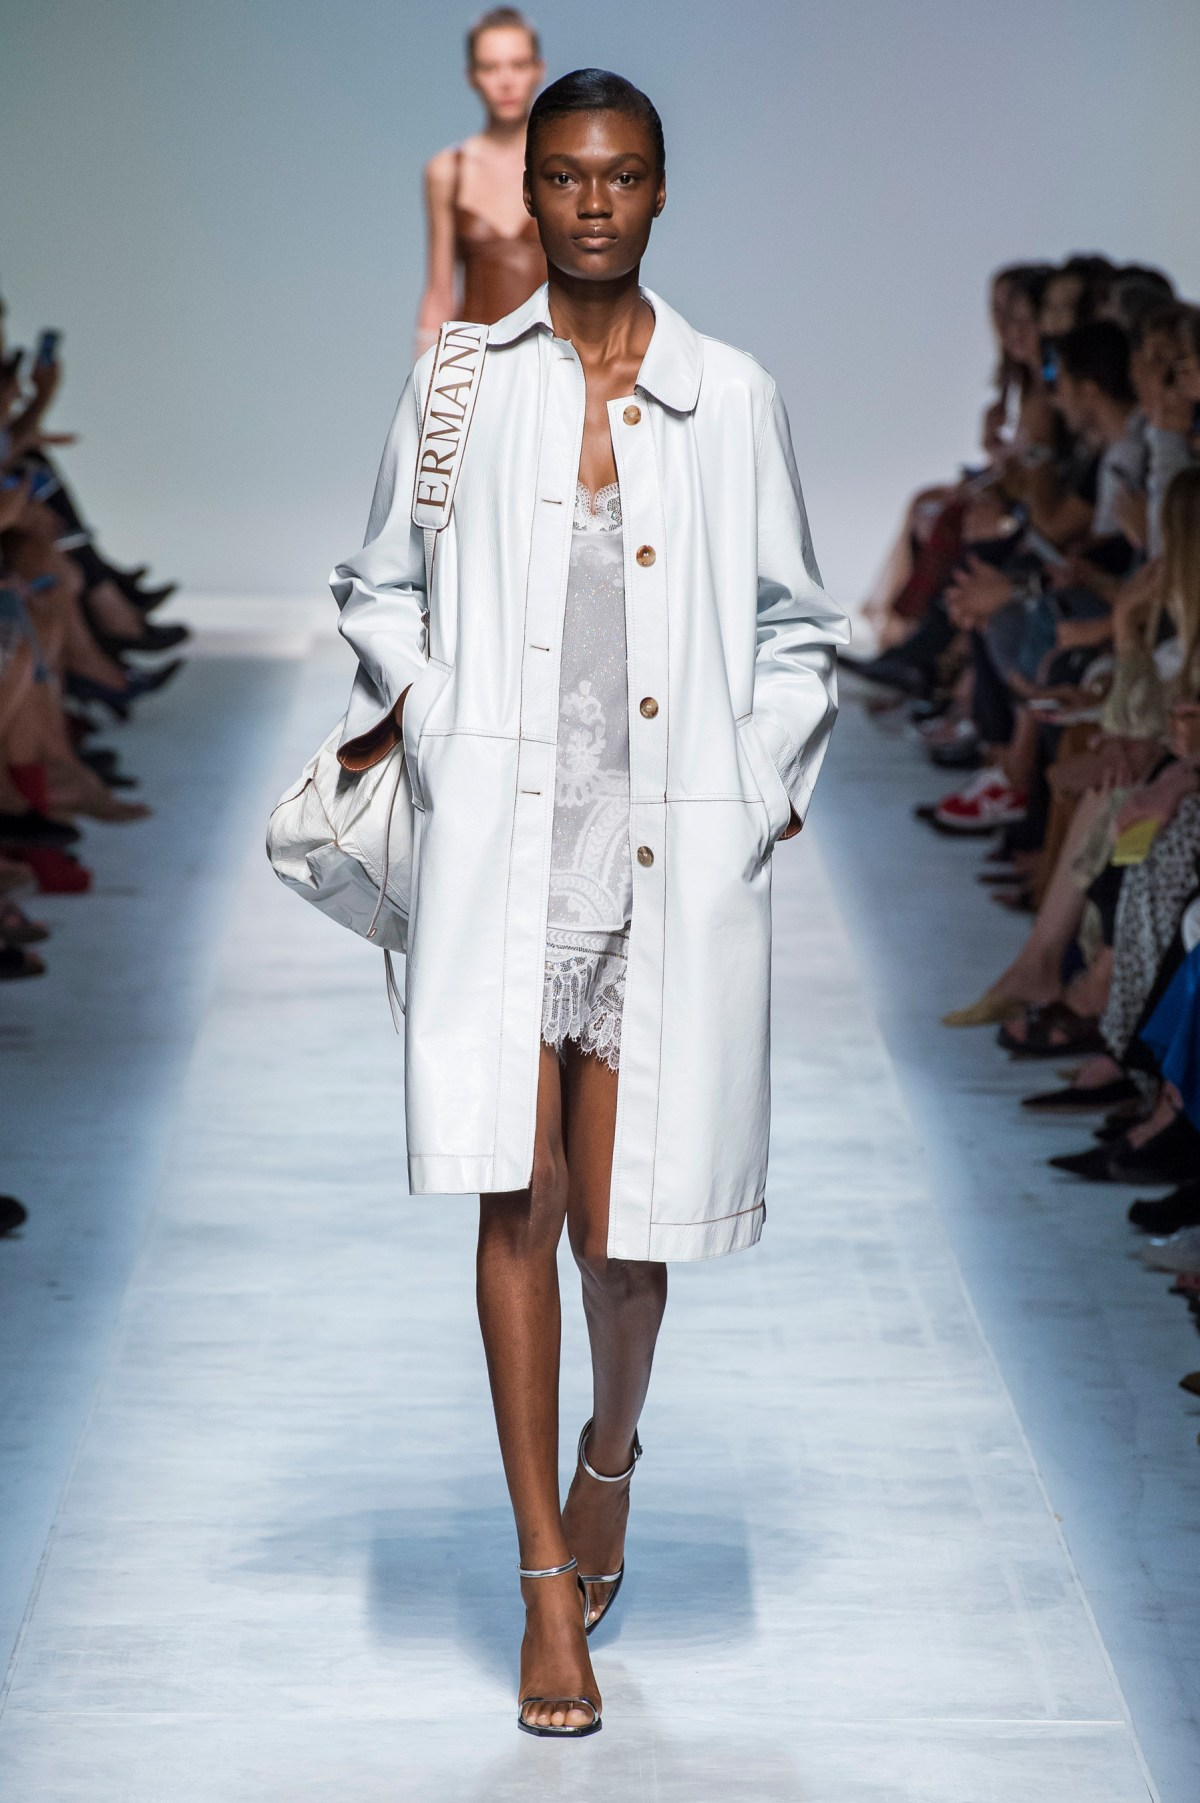 Runway: Ermanno Scervino Ready-to-Wear Spring 2019